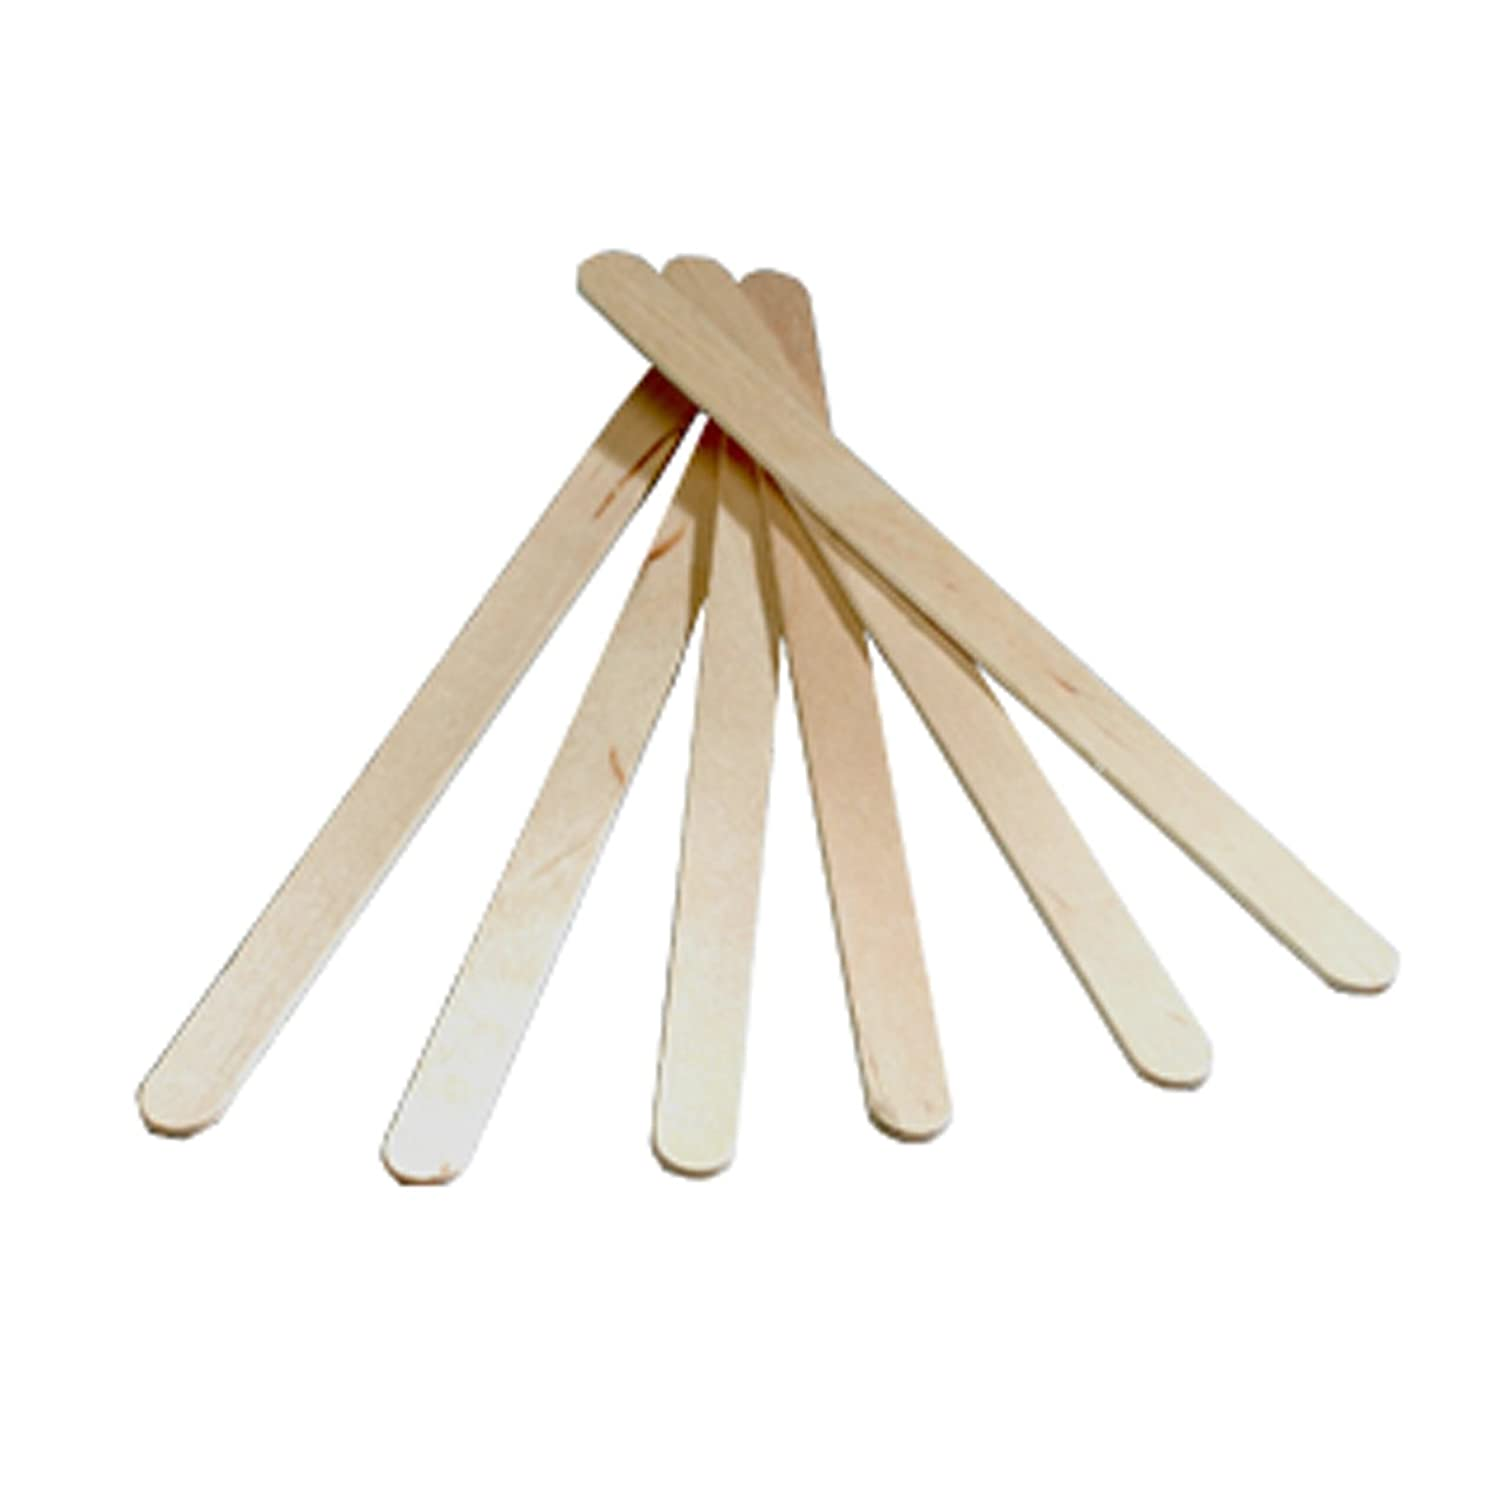 Mini Small Thin Wooden Wood Tongue Depressors Spatulas Wax Waxing Tatoo Sticks PLAIN